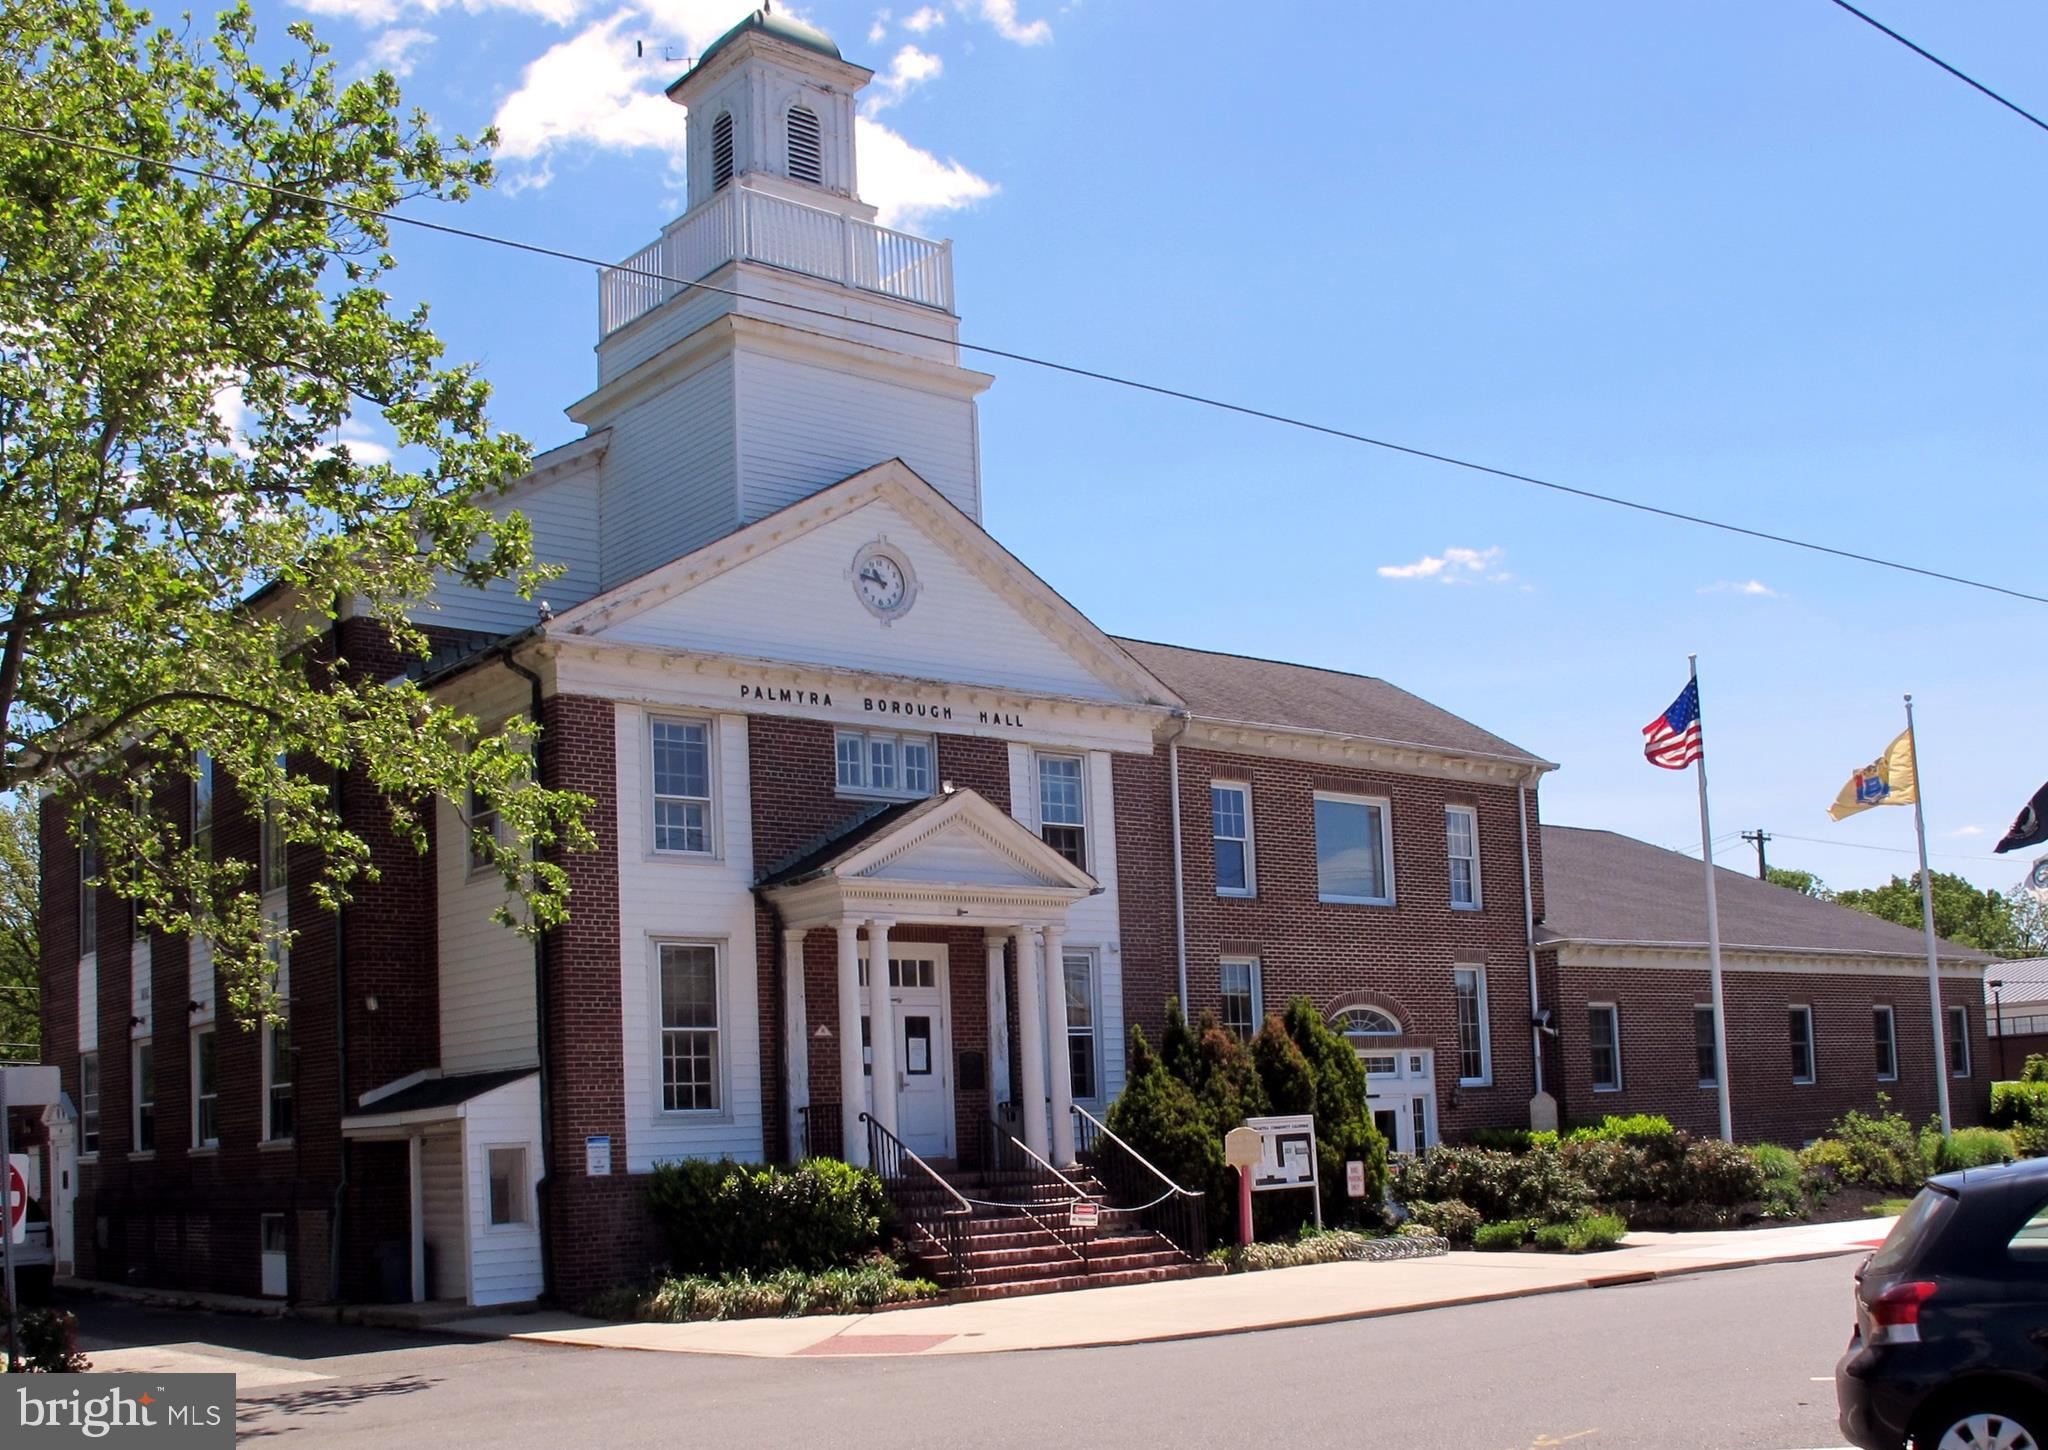 Township Building